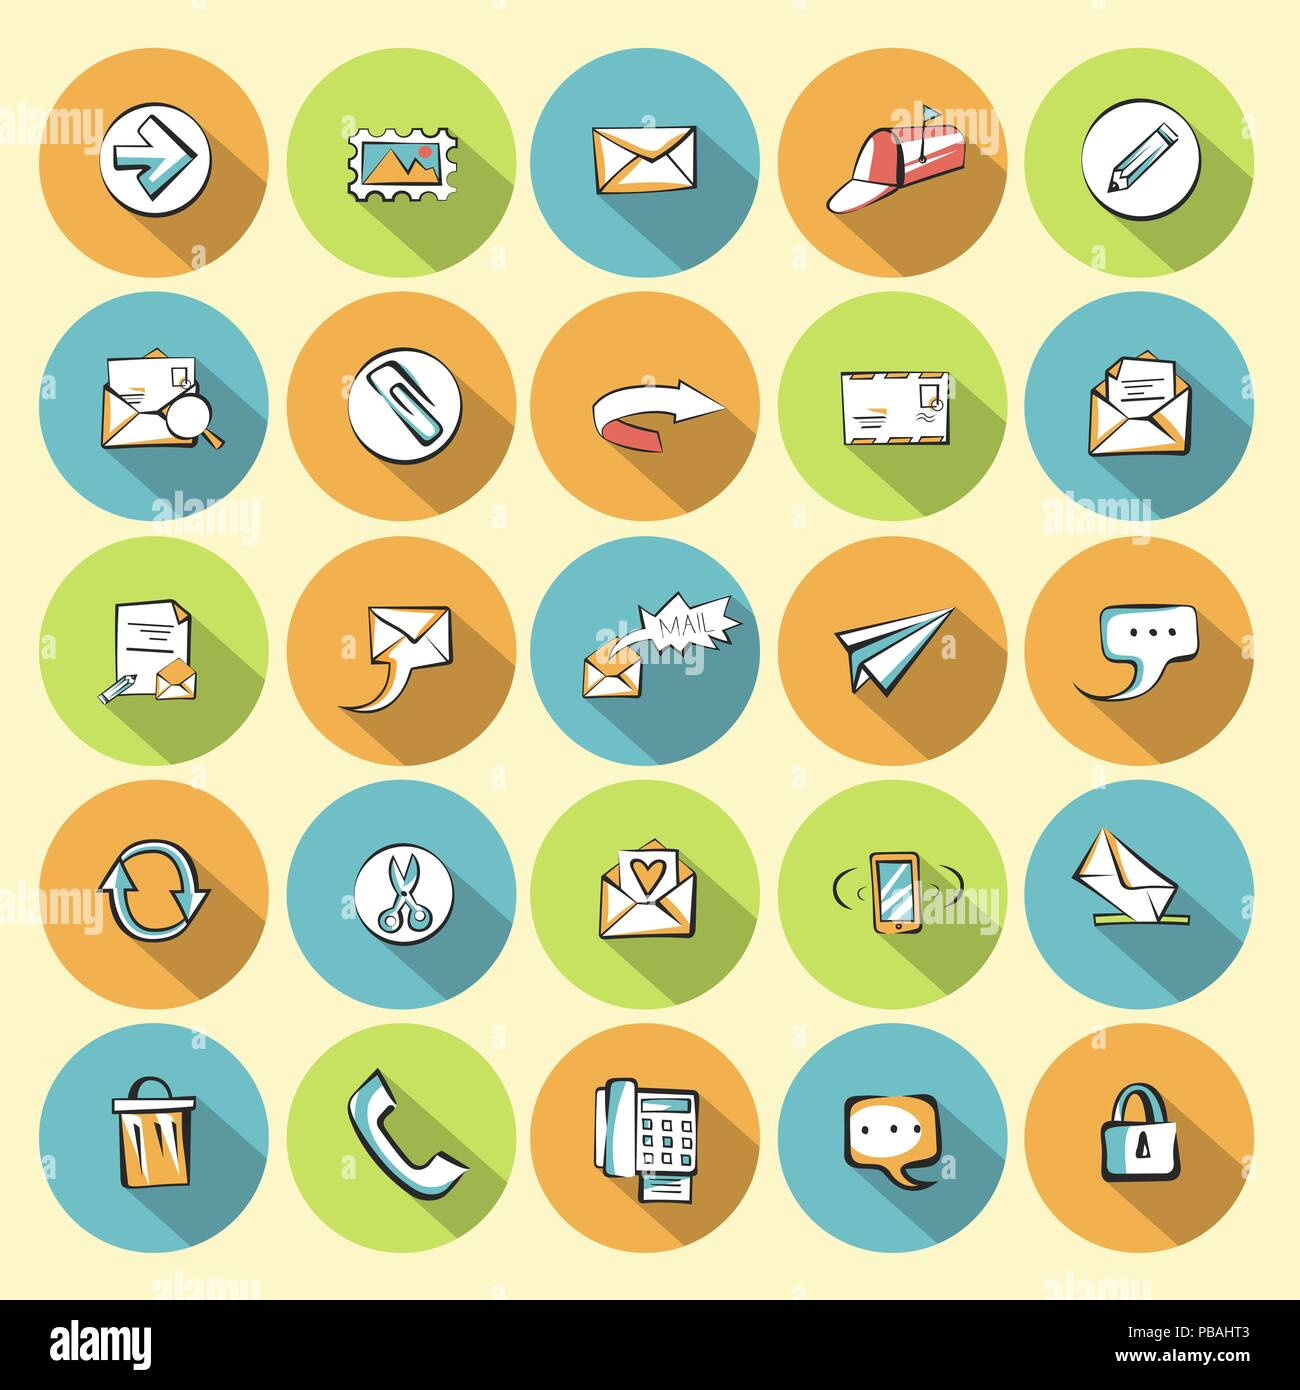 Flat communication icons set. Vector web signs collection. - Stock Image